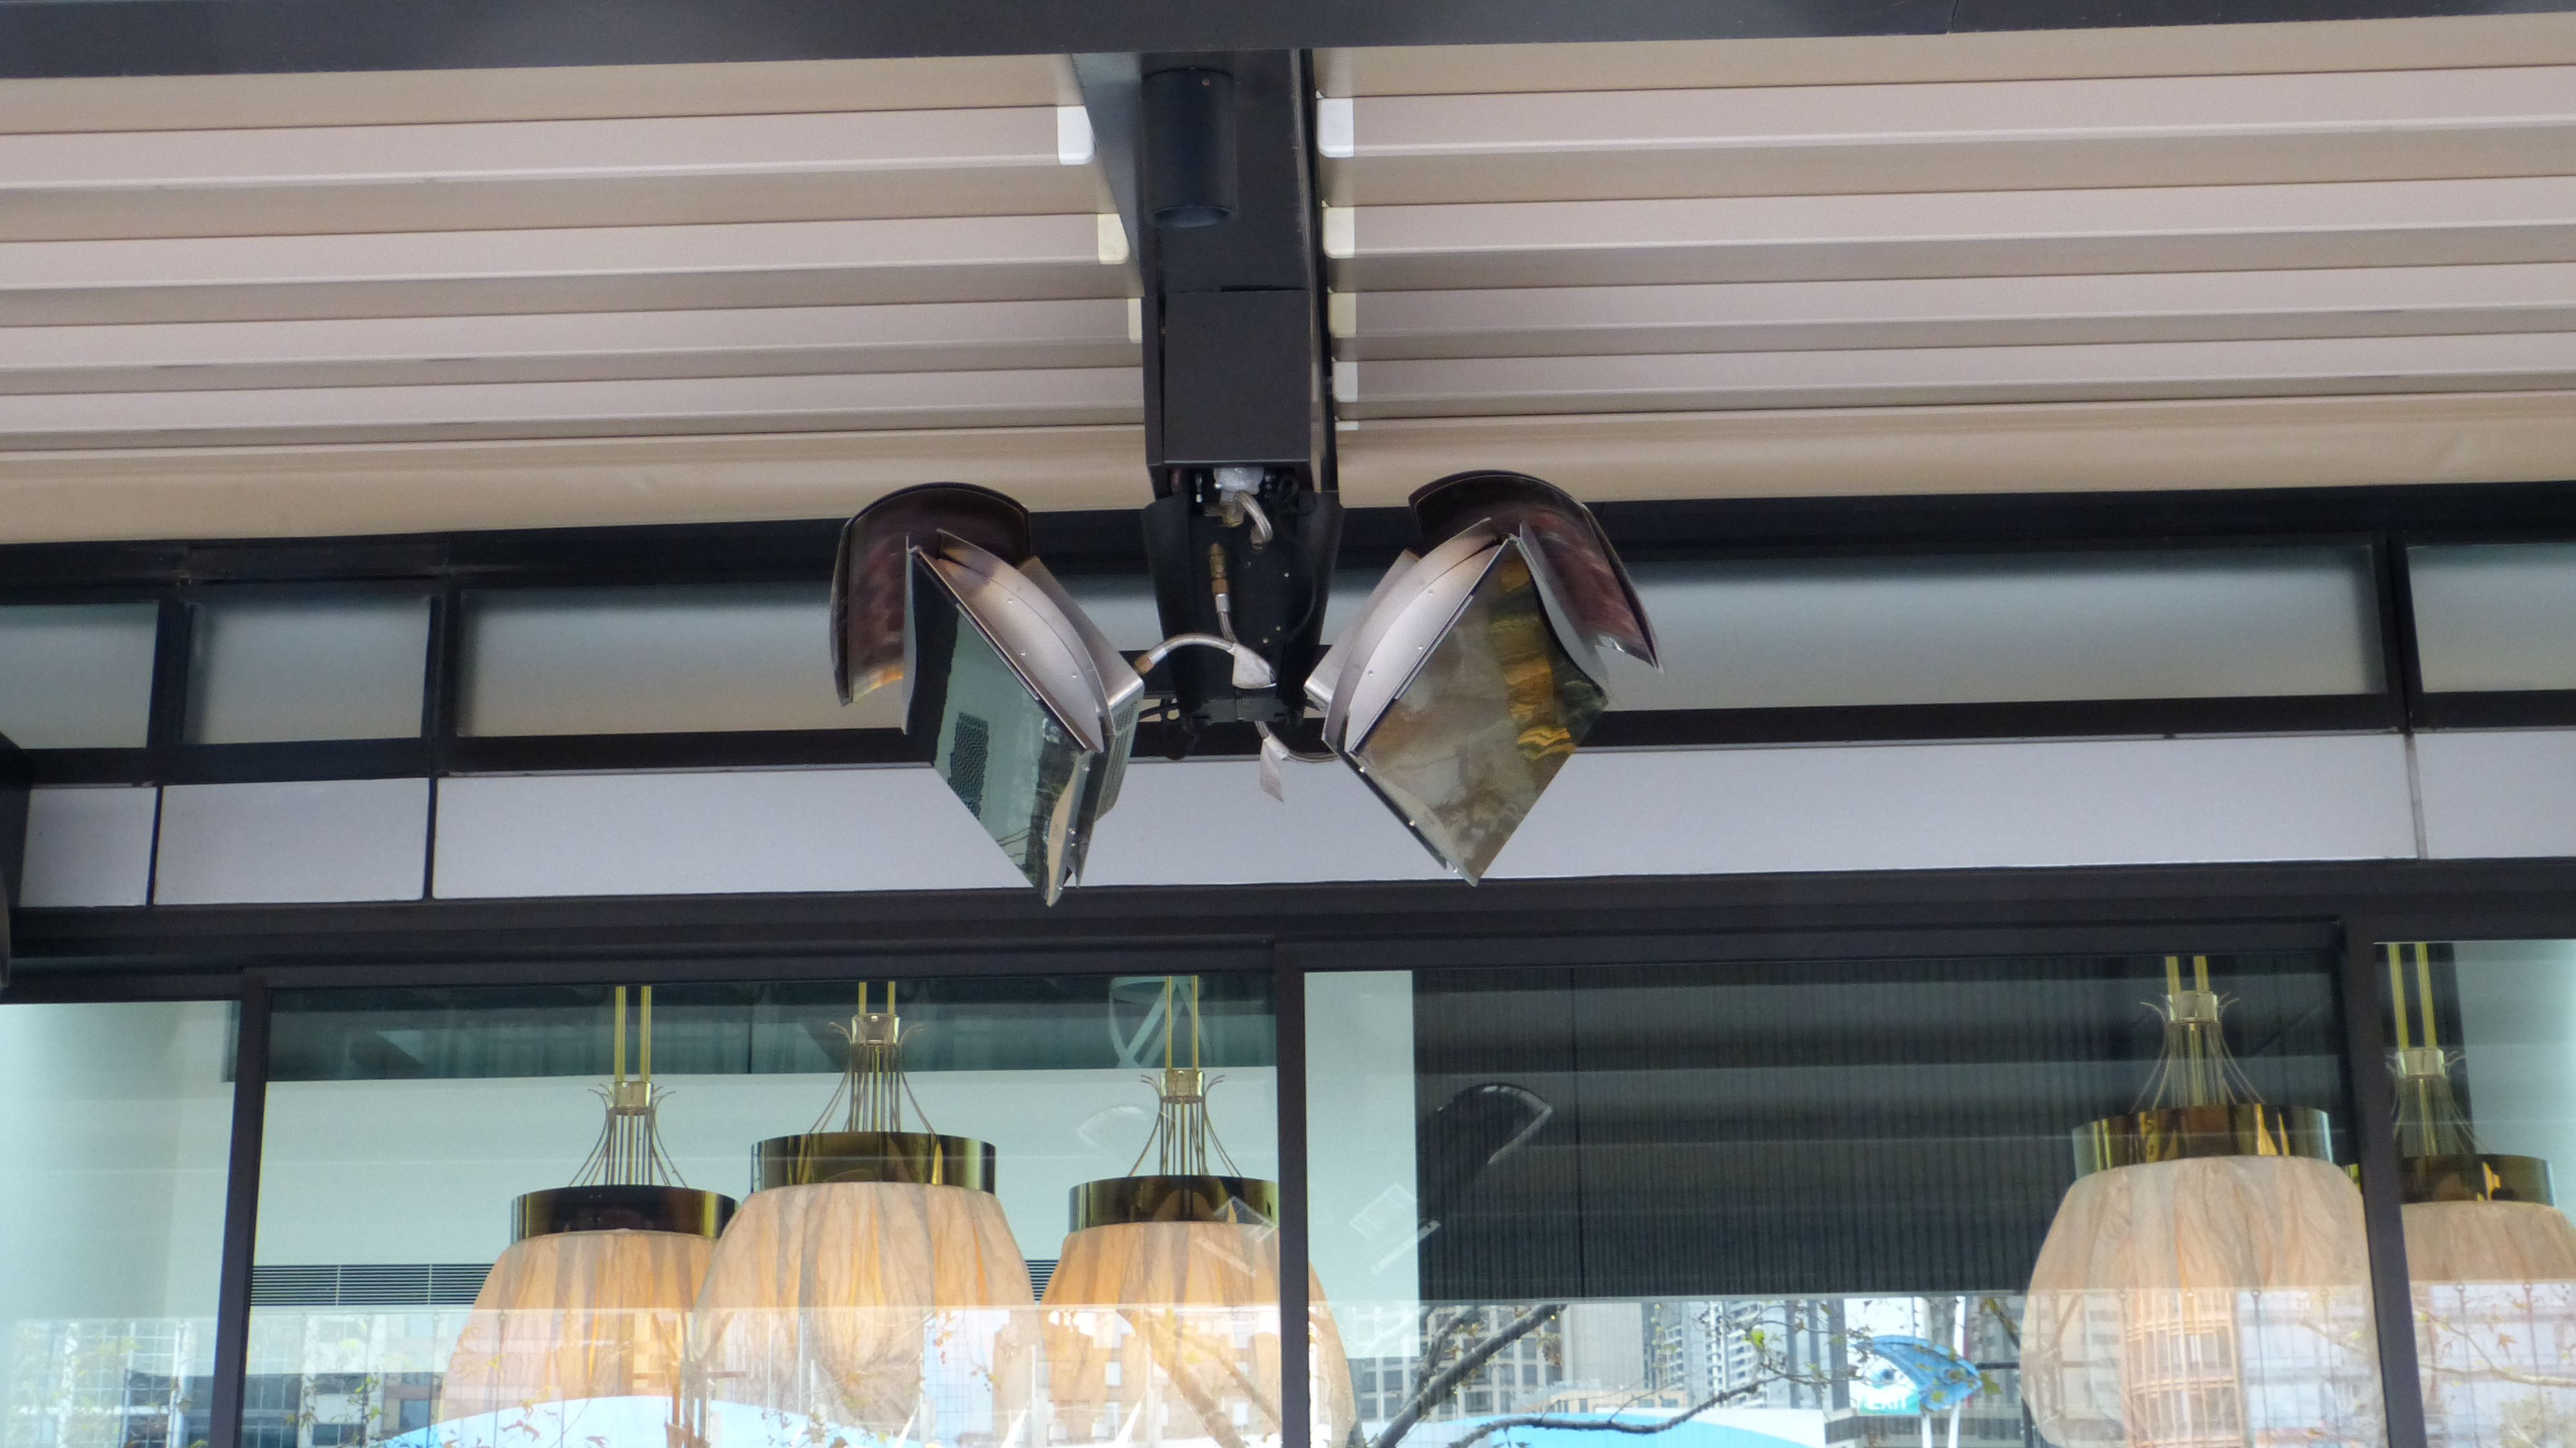 One Of Our Hospitality Projects The Number 8 Restaurant Southbank Melbourne Alutecnic Retractable Roof System Melbourne Awning Roof Roofing Systems Awning